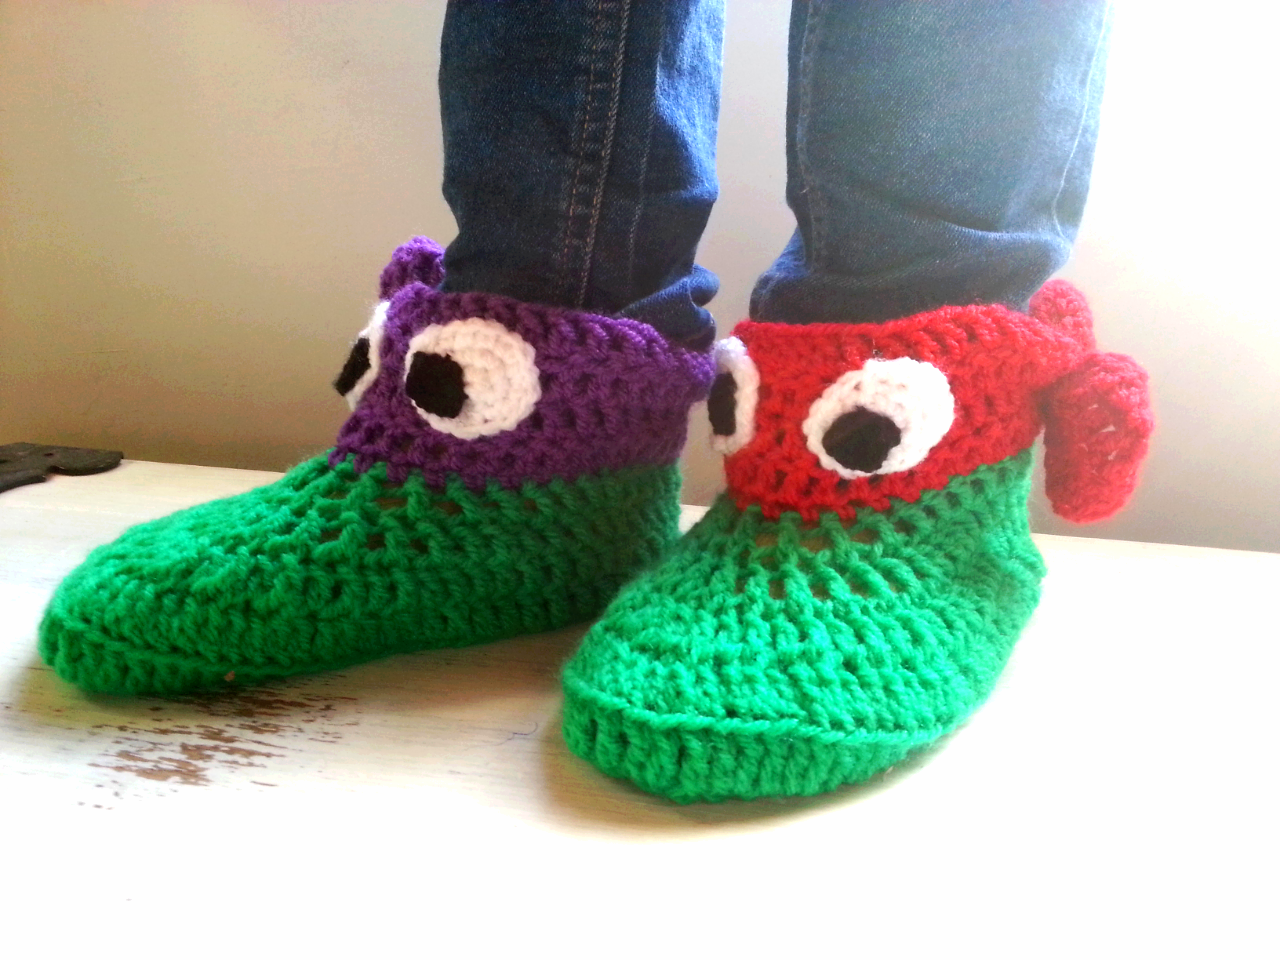 Ninja Turtle slippers